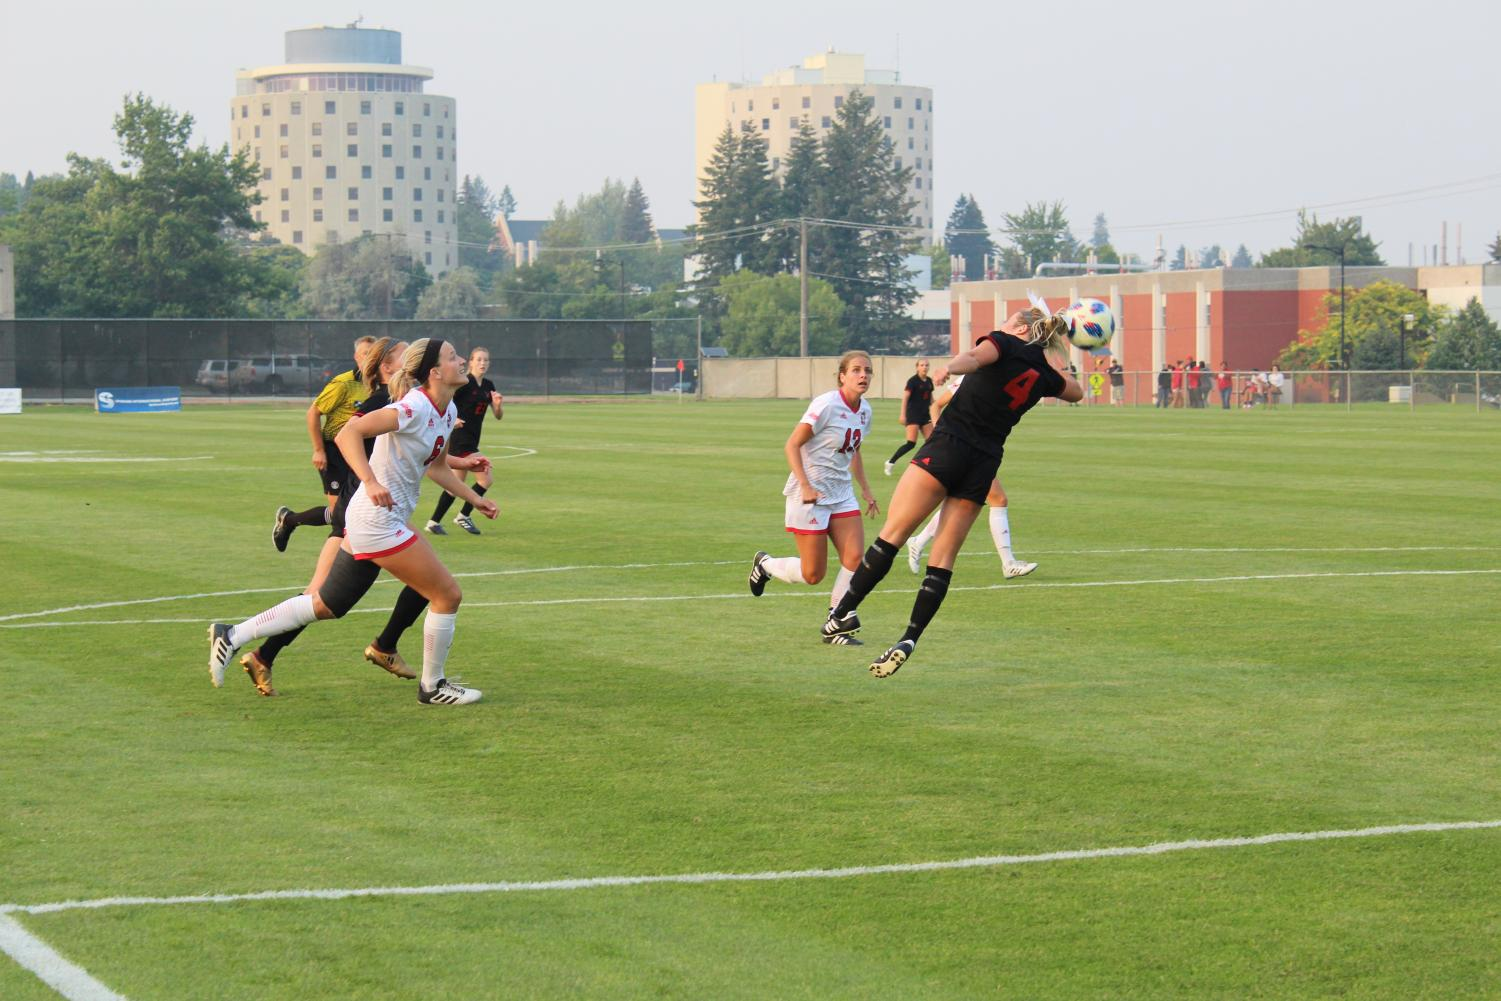 Senior forward Allison Raniere heads the ball against South Dakota on August 24 | Jeremy Burnham for The Easterner